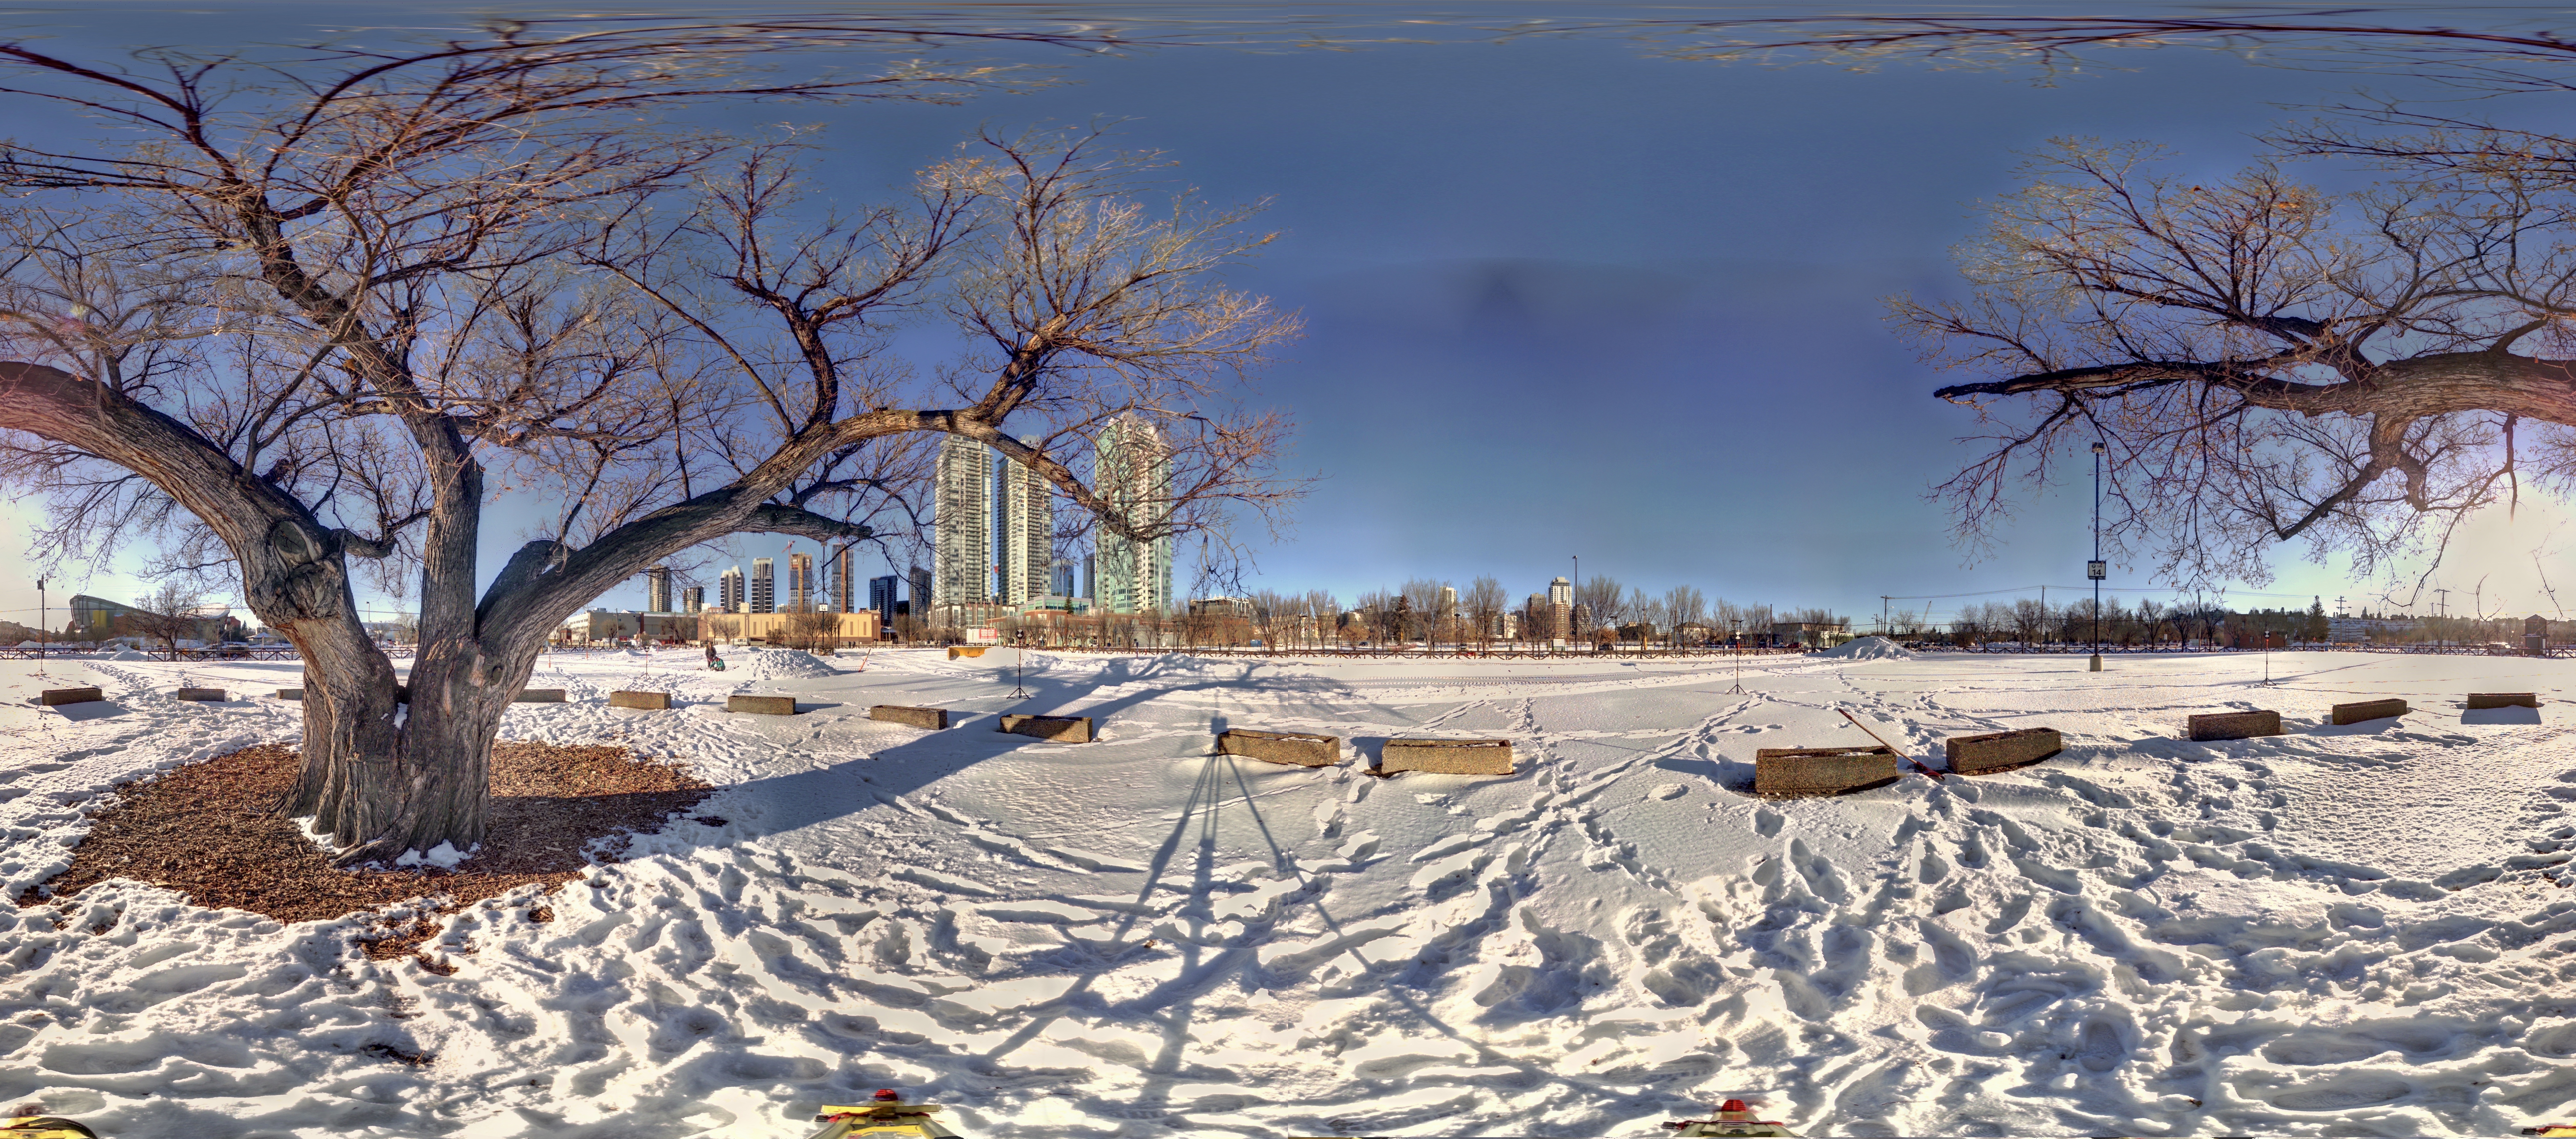 Panoramic view of the Stampede Elm and downtown Calgary from Z+F 5010X laser scanner, scanning location 1